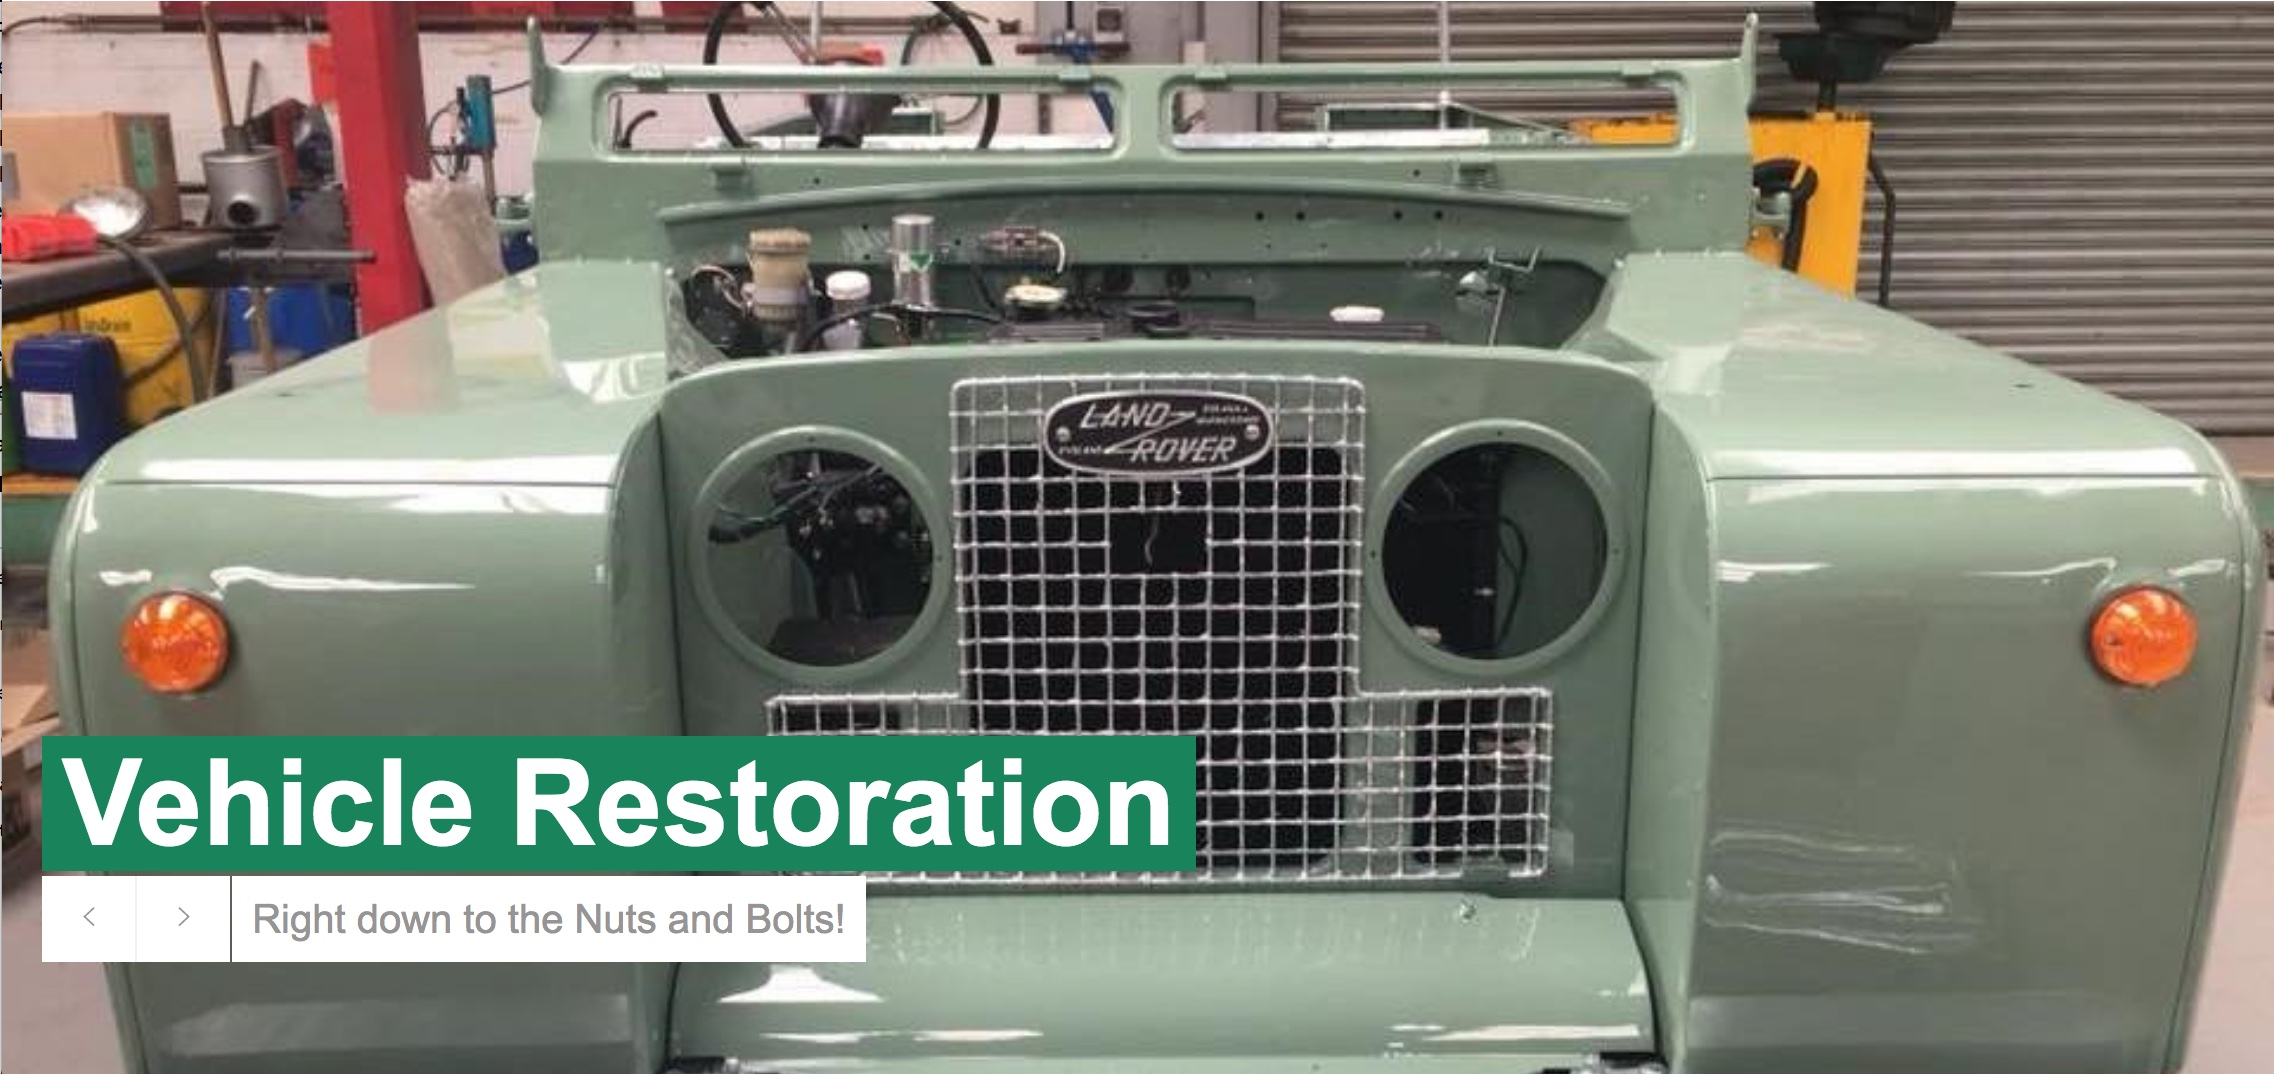 Hobson Industries vehicle restoration services